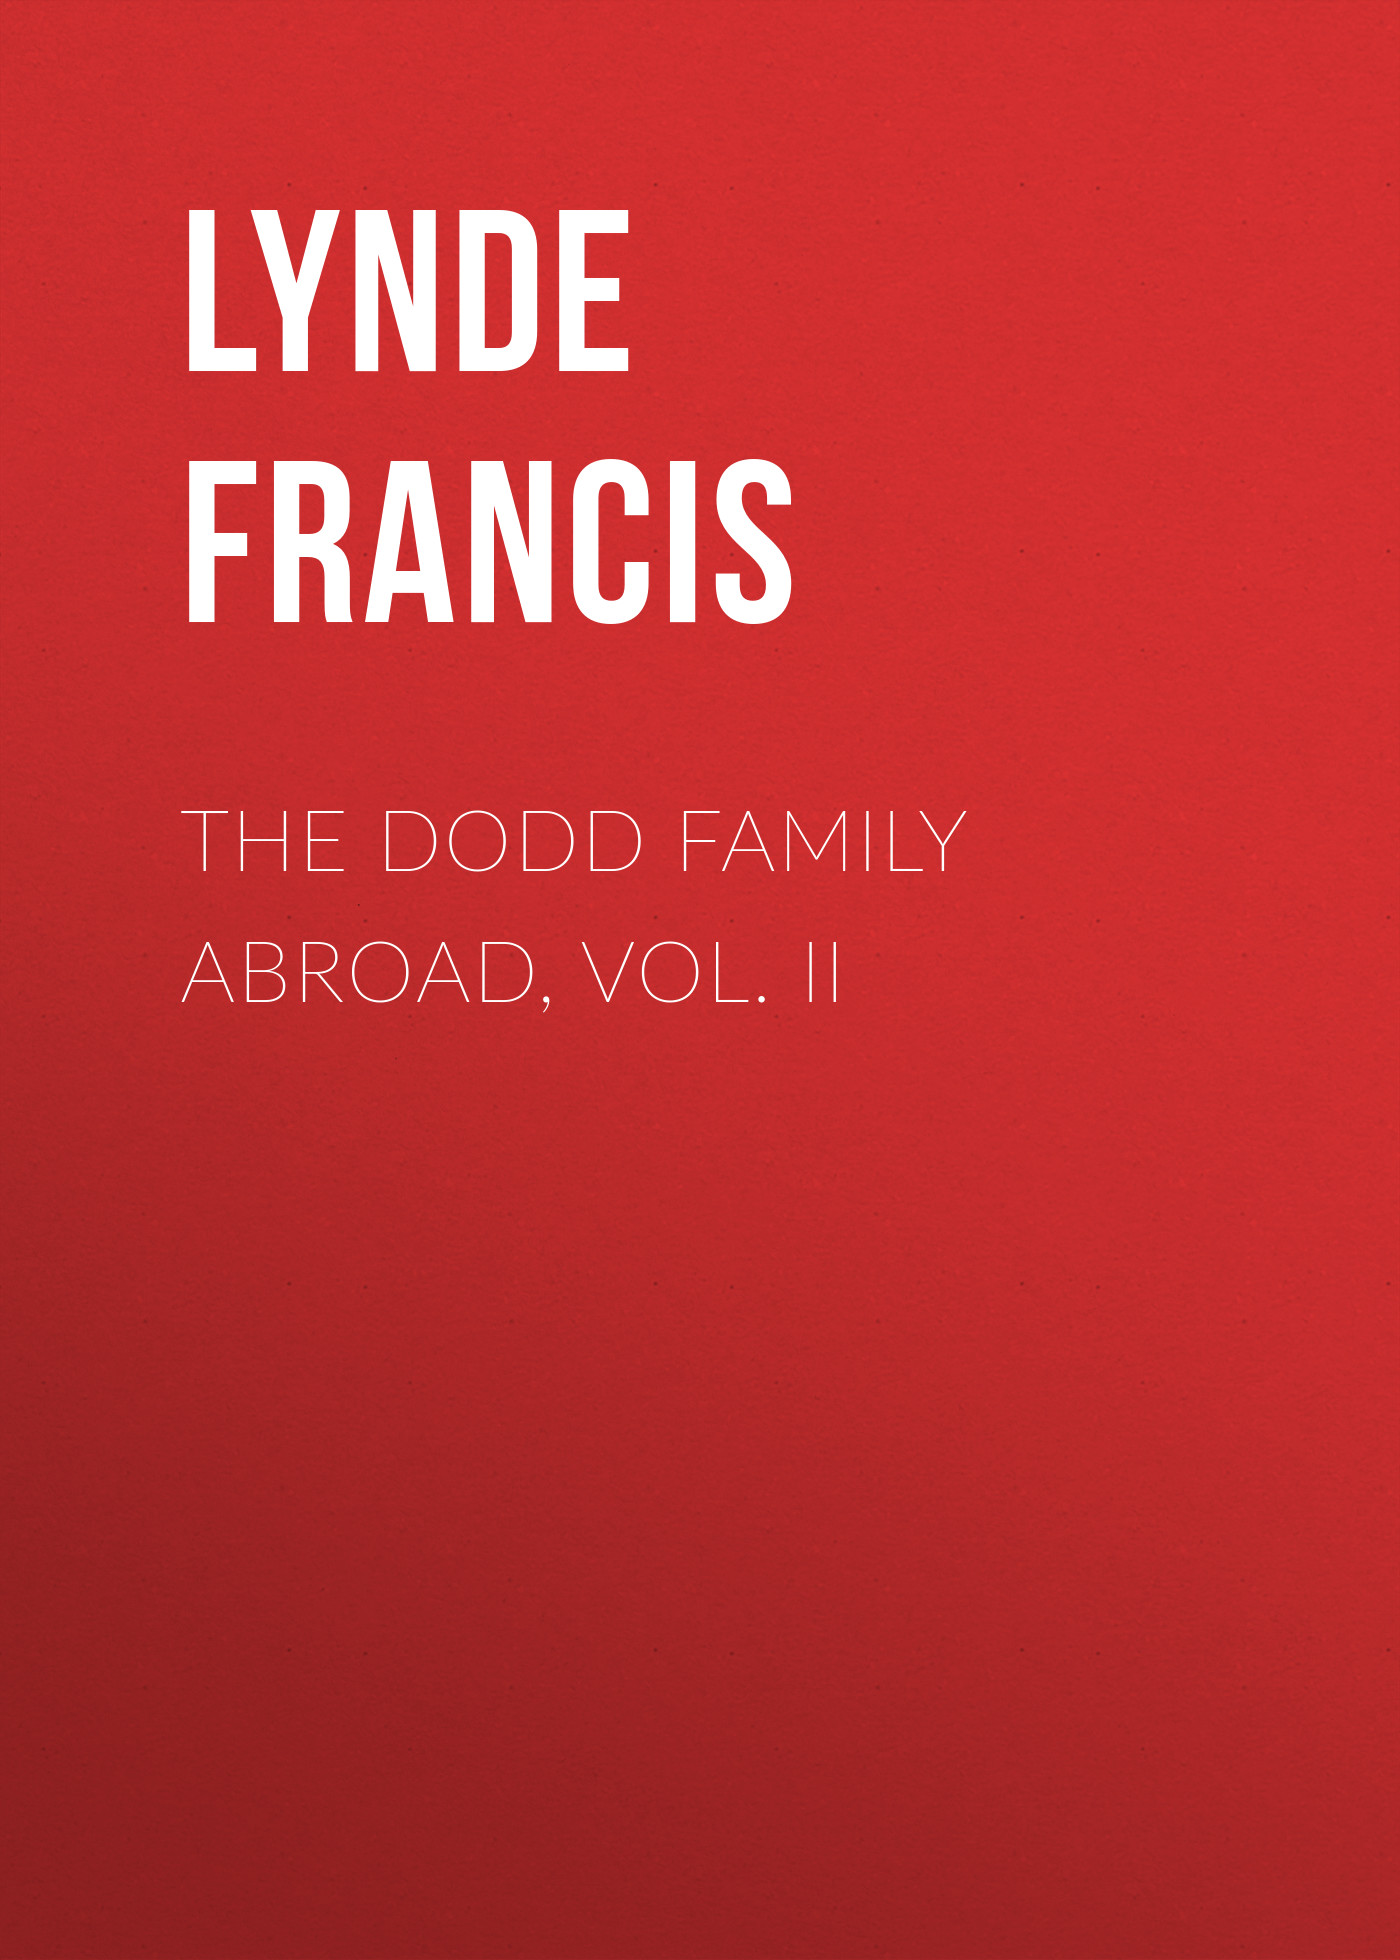 Lynde Francis The Dodd Family Abroad, Vol. II marine nematode ecology vol ii